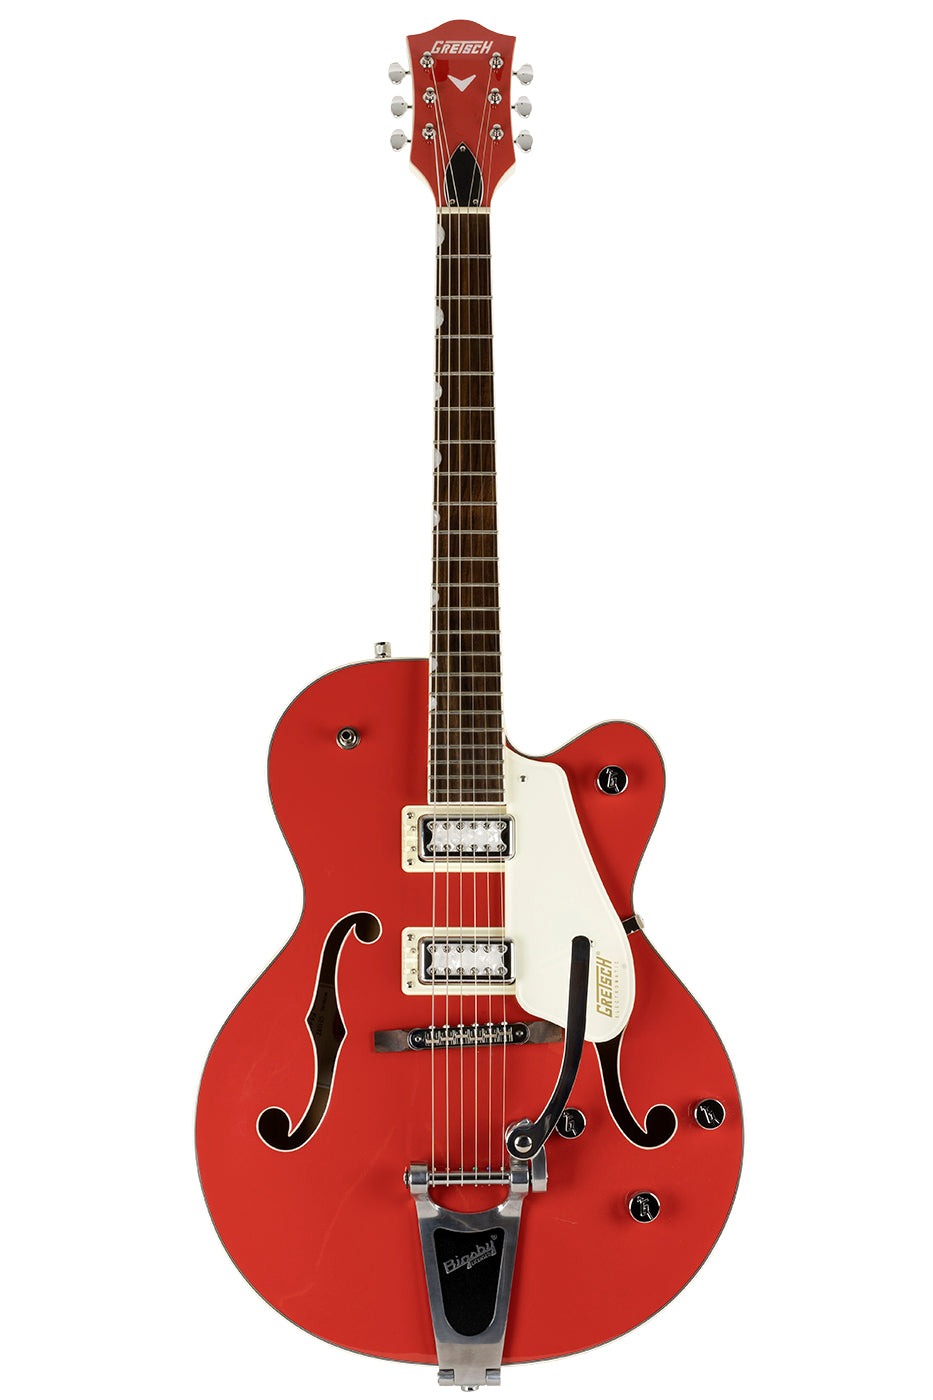 Used 2021 Gretsch G5410T Tri-Five Limited Two-Tone Fiesta Red & Vintage White image 7